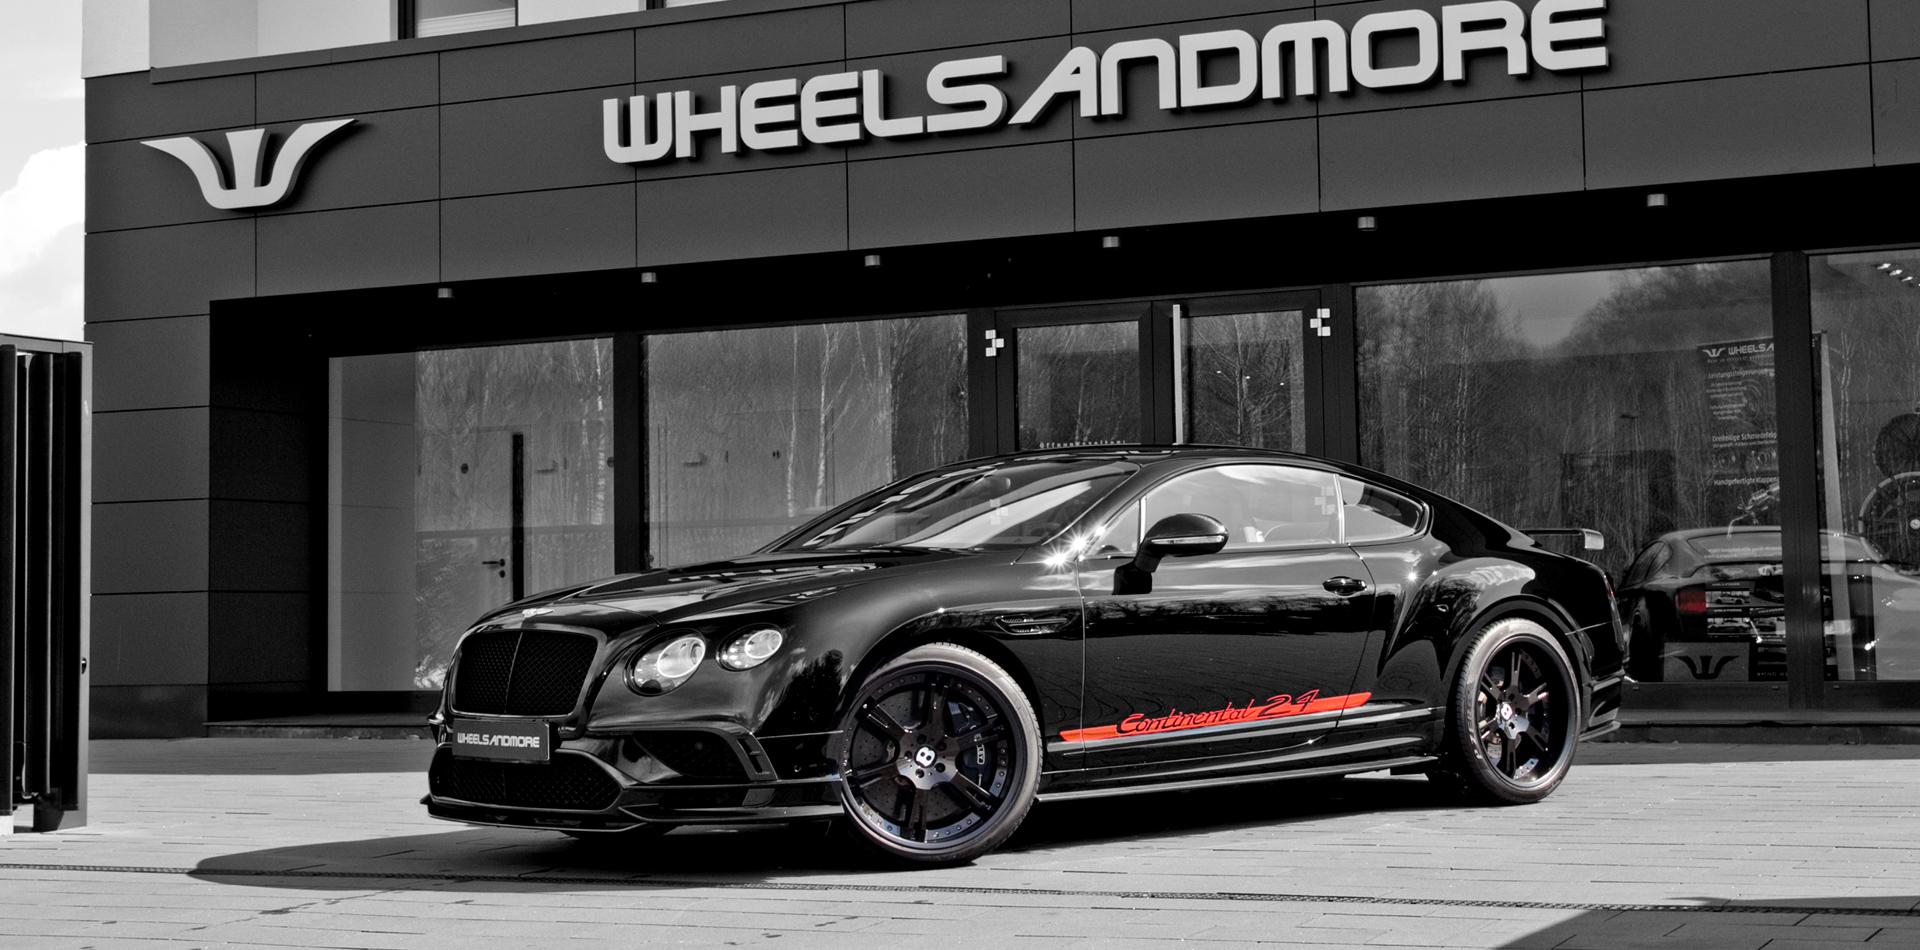 With only 24 copies in existence, the Bentley Continental 24 is not a sight you would see every day (unless you bought one)